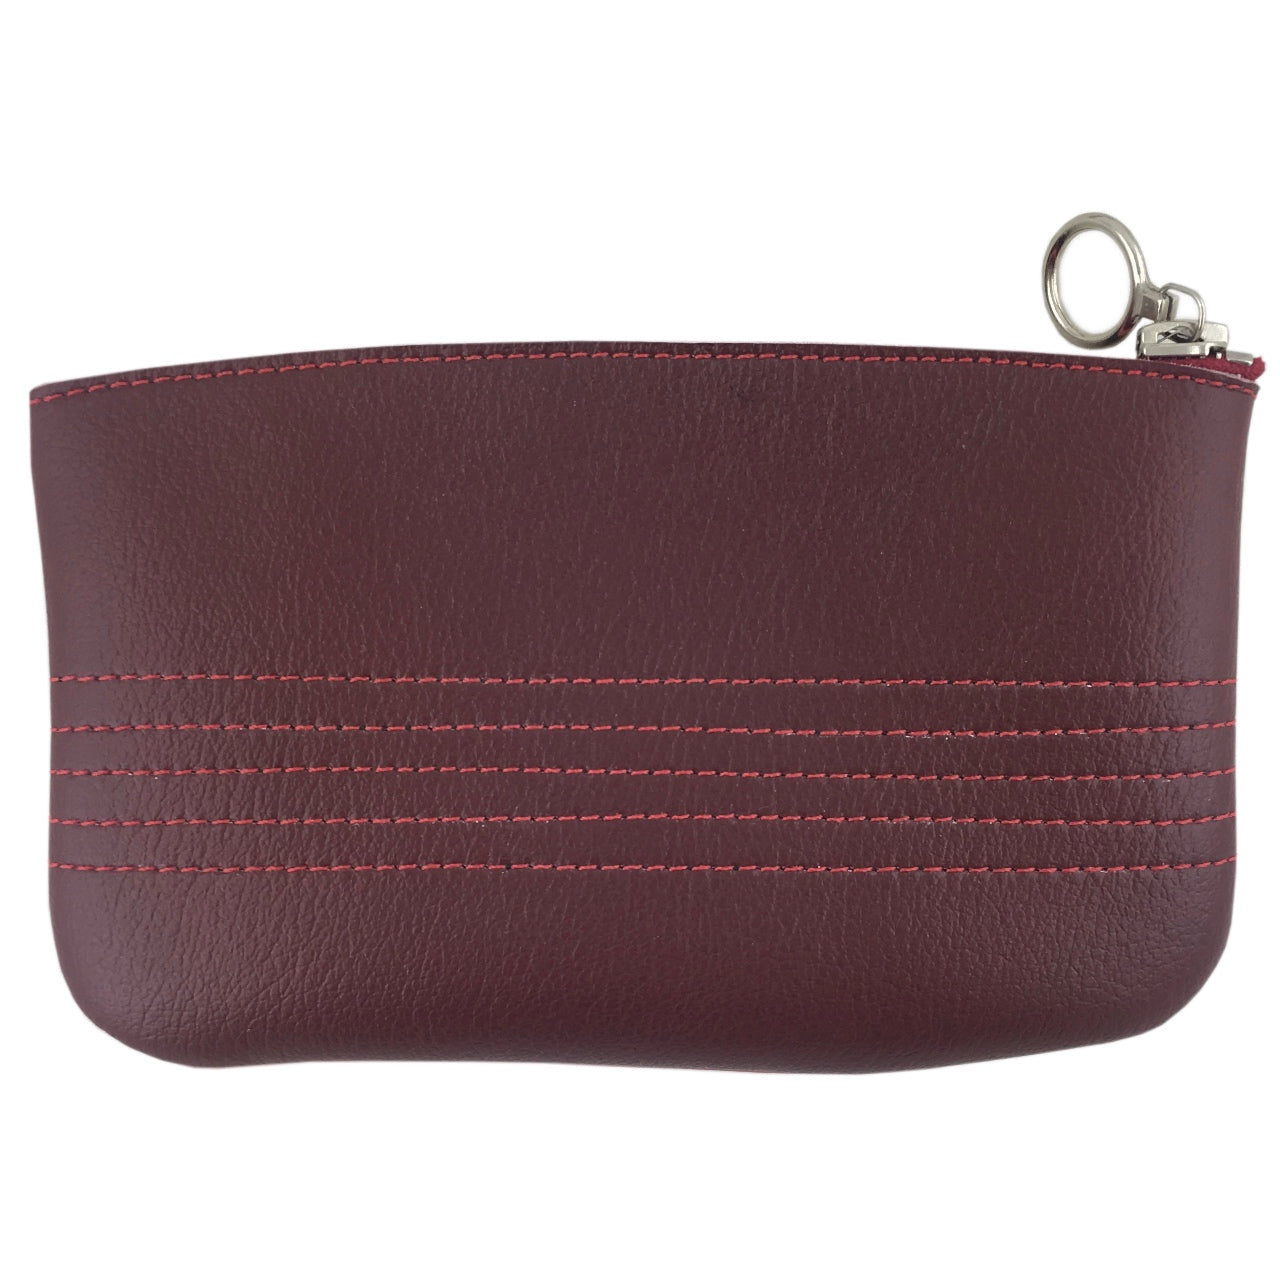 Vegan Wares Coin Purse -Red